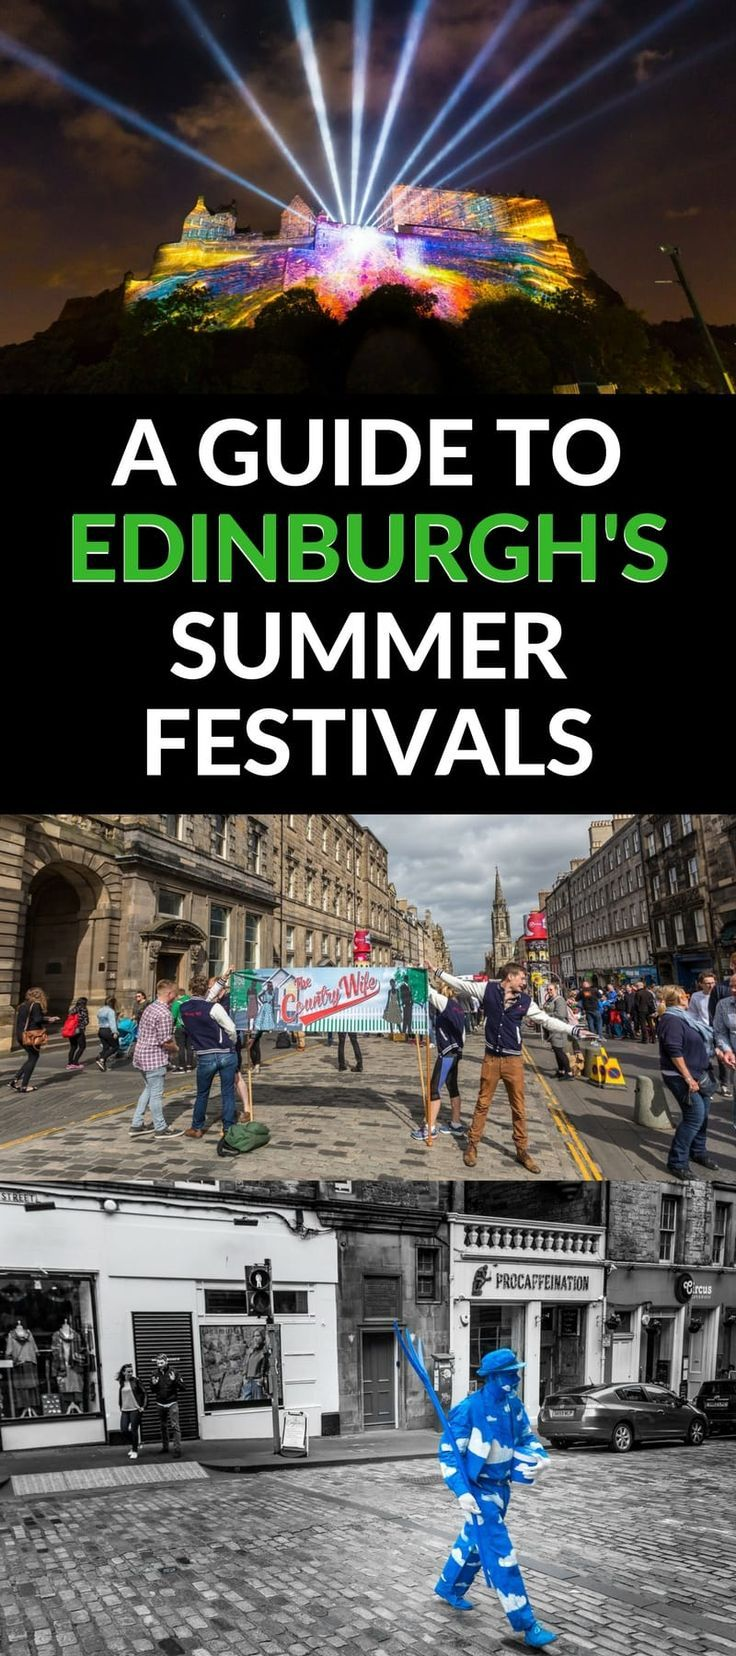 A complete guide to the Edinburgh Festivals in summer from two locals. Six festivals, including Edinburgh Fringe and the Royal Edinburgh Military Tattoo, take place each year in August and this guide will help you find out what is happening, tips for making the most of your time, and give you planning advice to navigate this festive but busy time in Edinburgh Scotland!